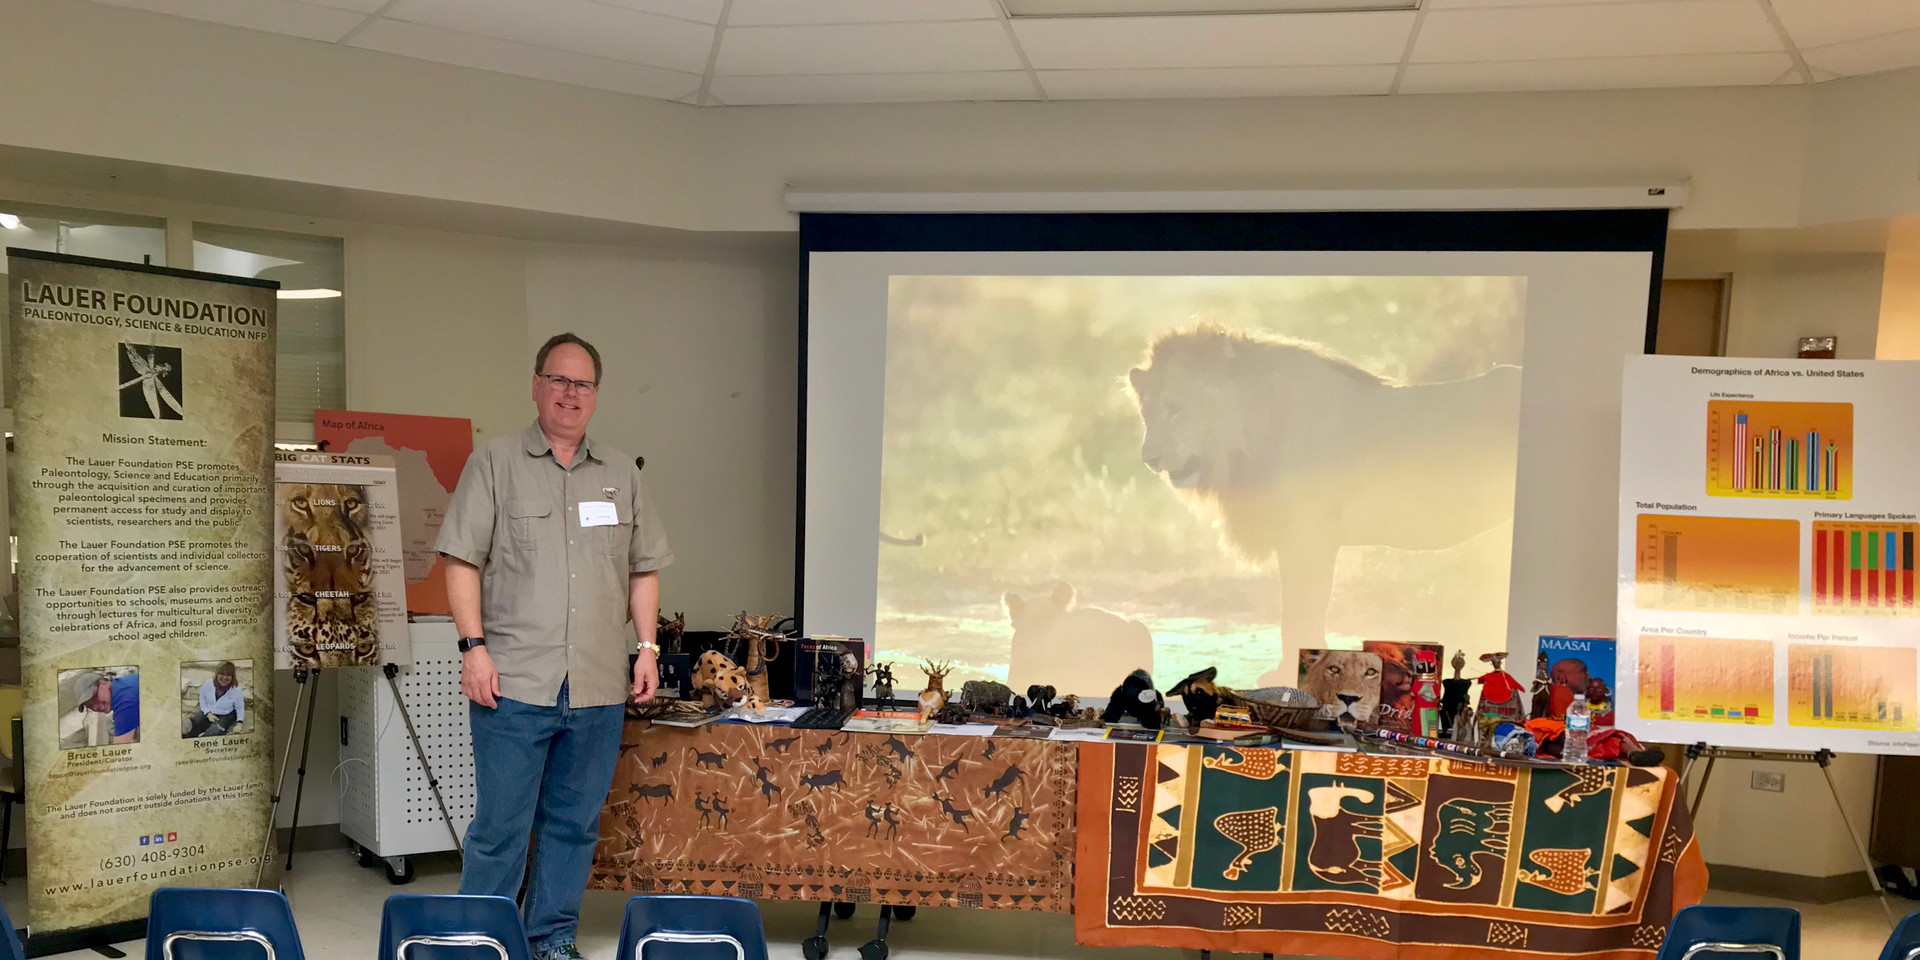 Bruce Lauer shares information on wildlife conservation